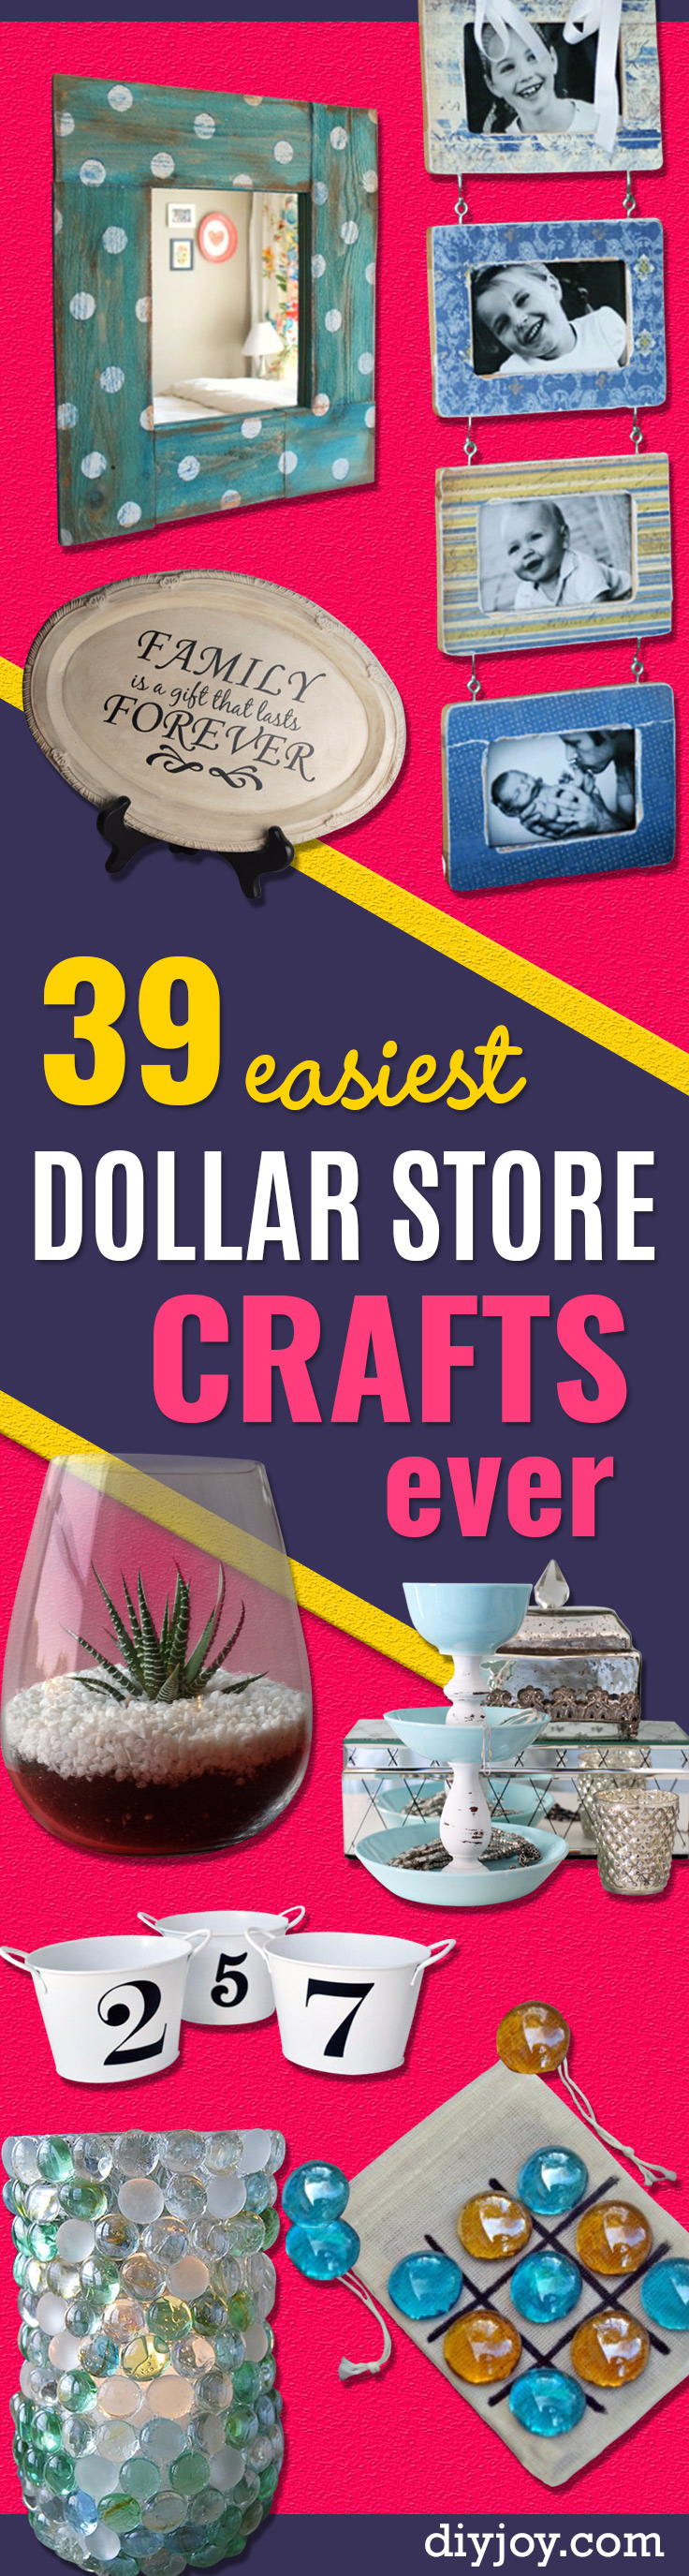 Easy Dollar Store Crafts - Quick And Cheap Crafts To Make, Dollar Store Craft Ideas To Make And Sell, Cute Dollar Store Do It Yourself Projects, Cheap Craft Ideas, Dollar Sore Decor, Creative Dollar Store Crafts